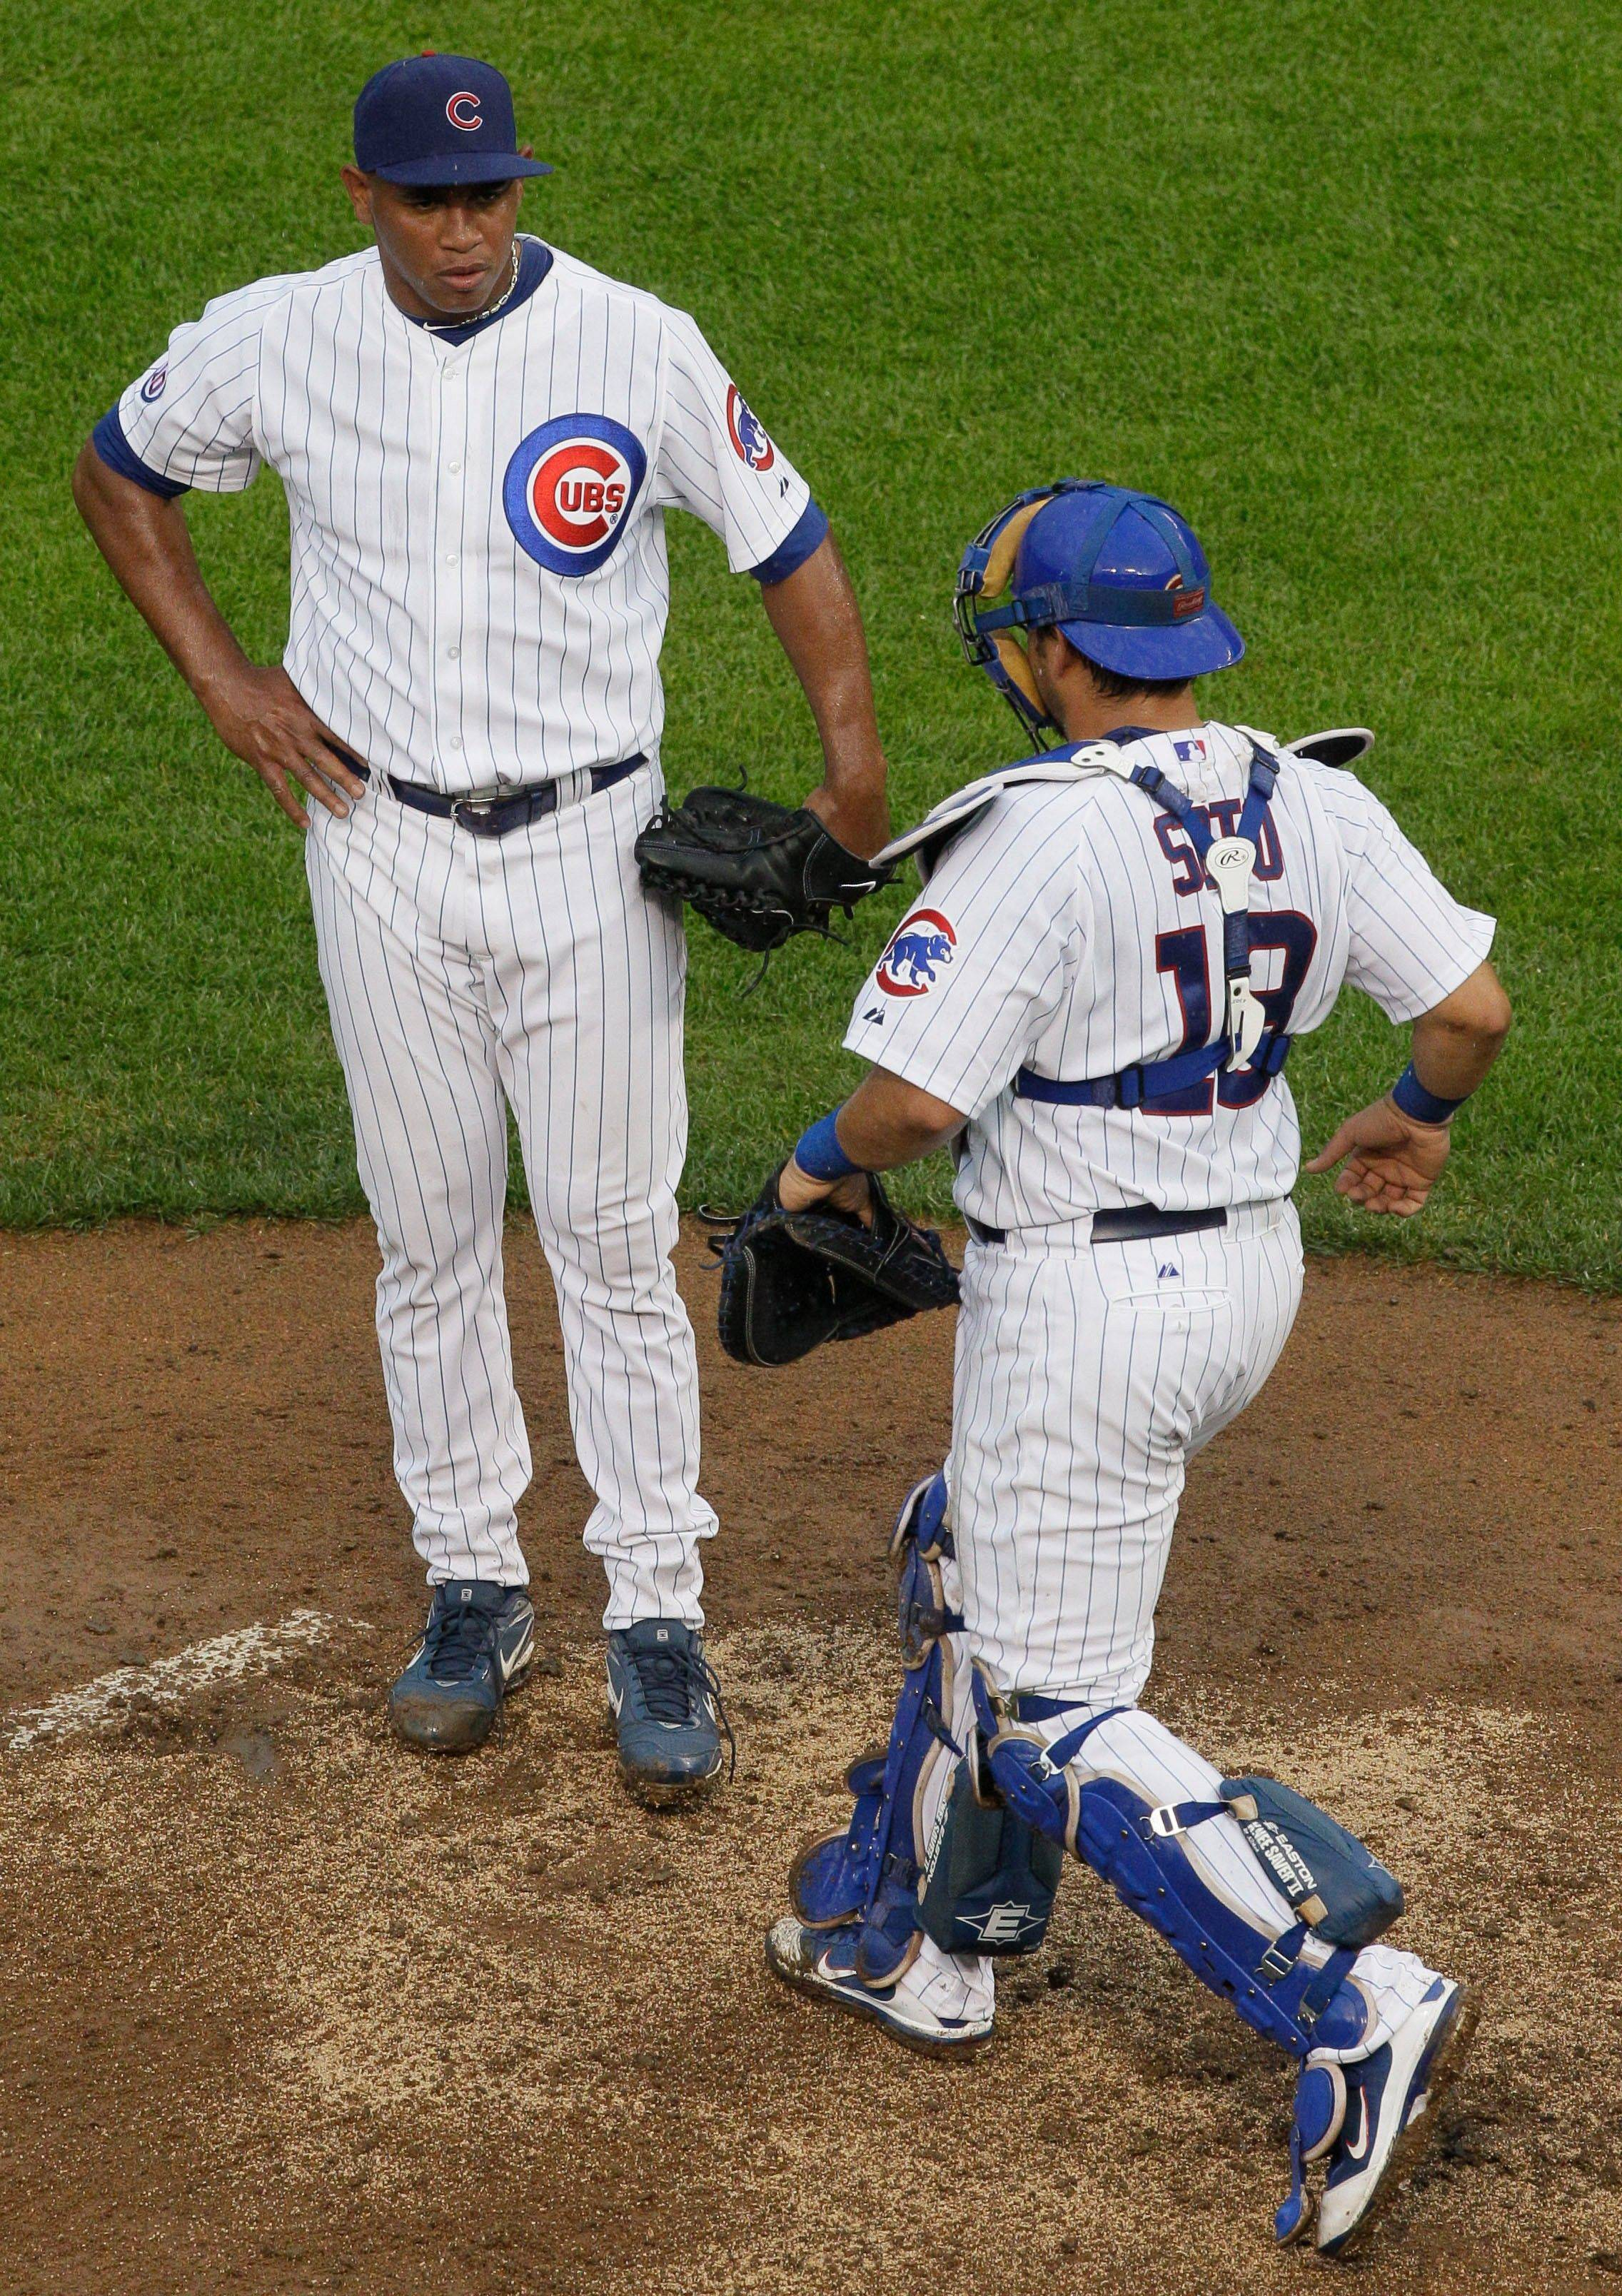 Cubs catcher Geovany Soto talks to closer Carlos Marmol after Derrek Lee hit a grand slam in the ninth inning Saturday to give the Pirates the lead at Wrigley Field.